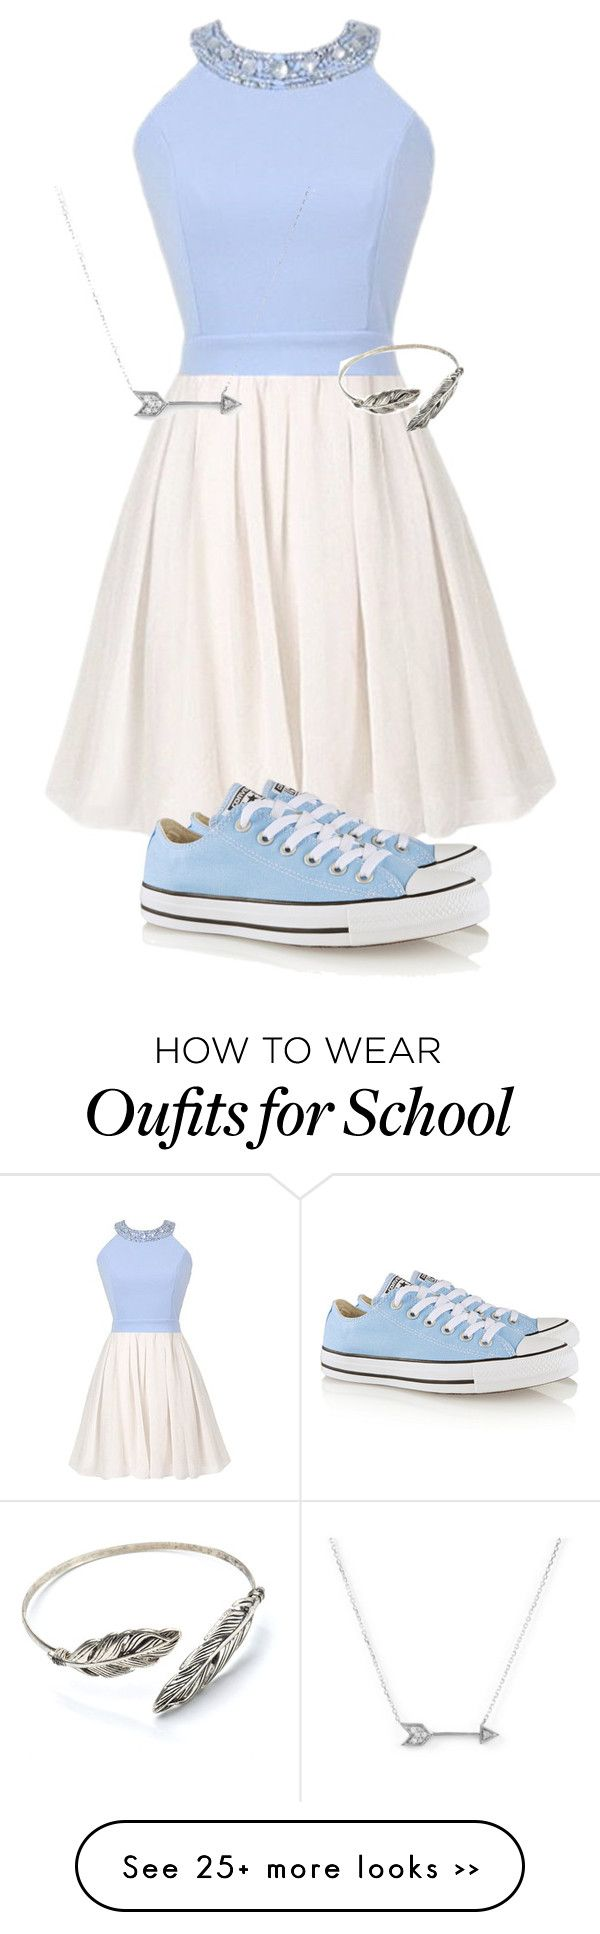 """School"" by addiegirl15 on Polyvore featuring Converse and Adina Reyter"